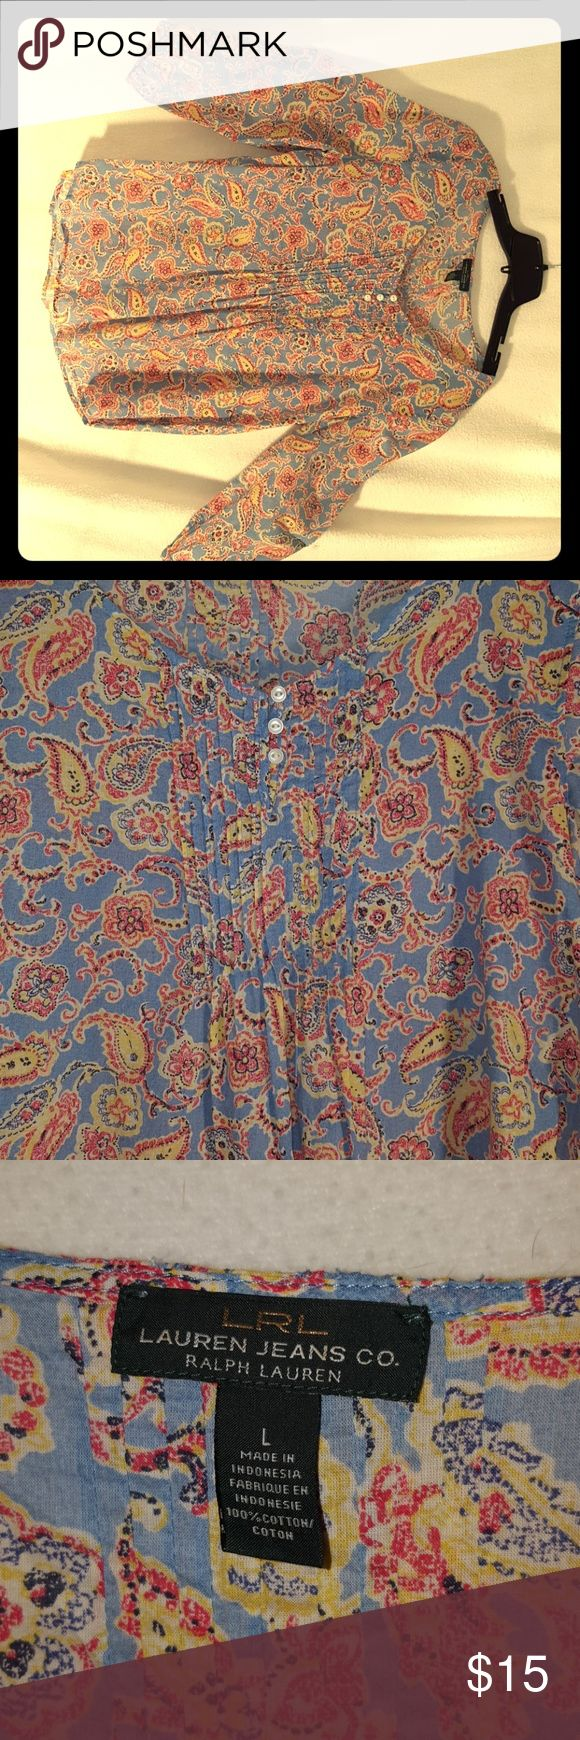 Multi color blouse 100% cotton multicolored, lightweight,  3/4 sleeve, scoop type neck with pleating and buttons. Paisley pattern Lauren Jeans Co Ralph Lauren Tops Blouses